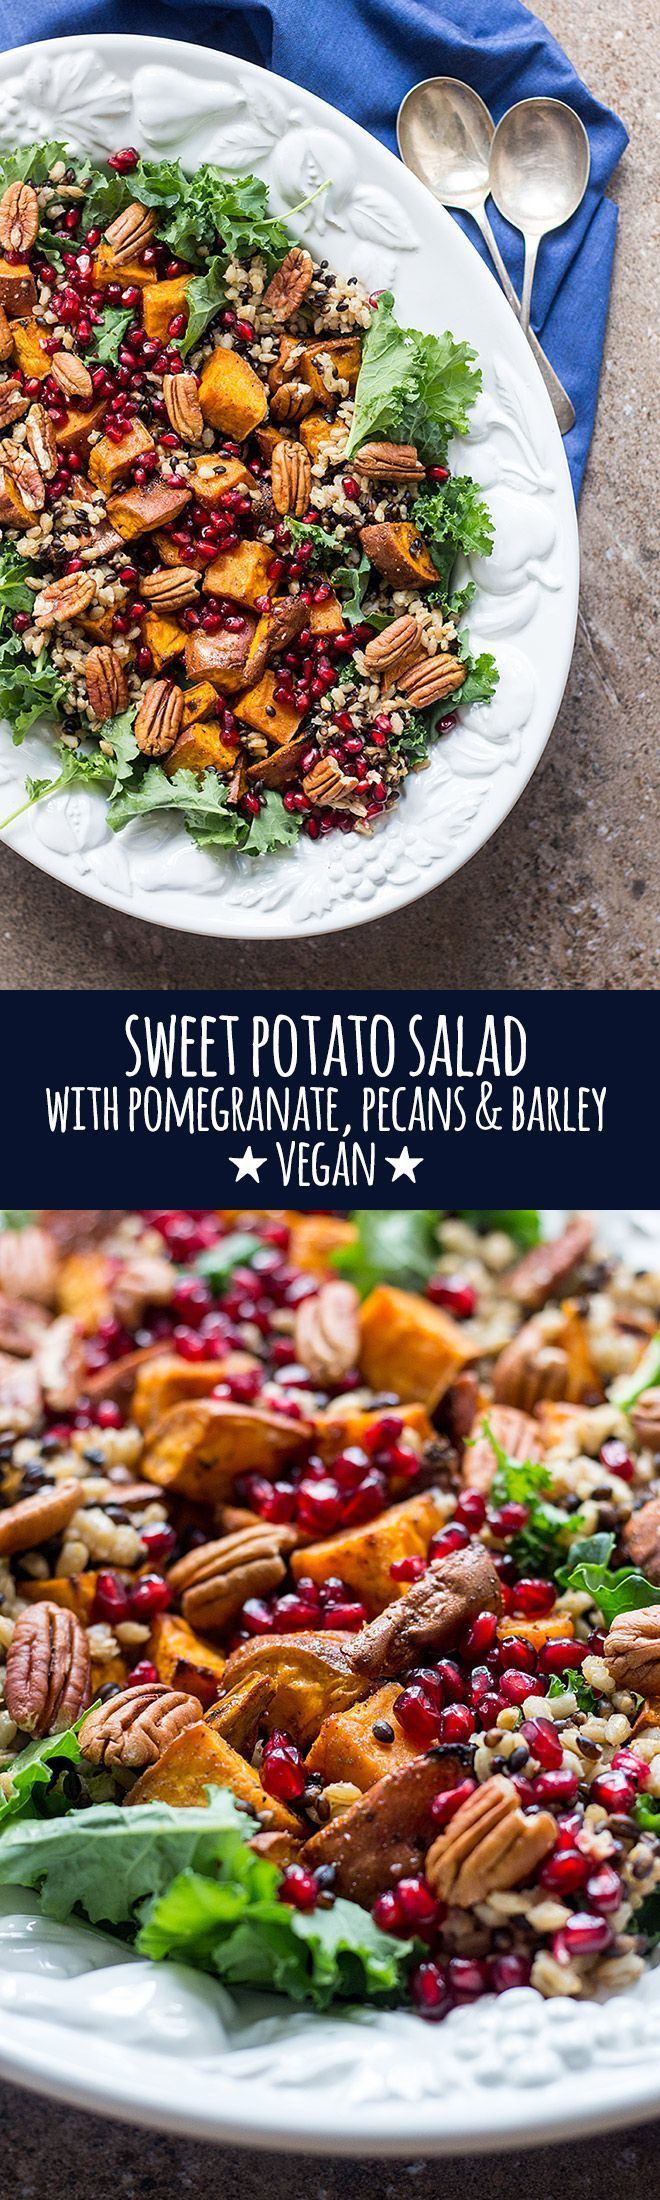 Perfect for the festive season, this hearty sweet potato salad with pomegranate, pecans and barley is served with a punchy herb dressing. via @Quite Good Food